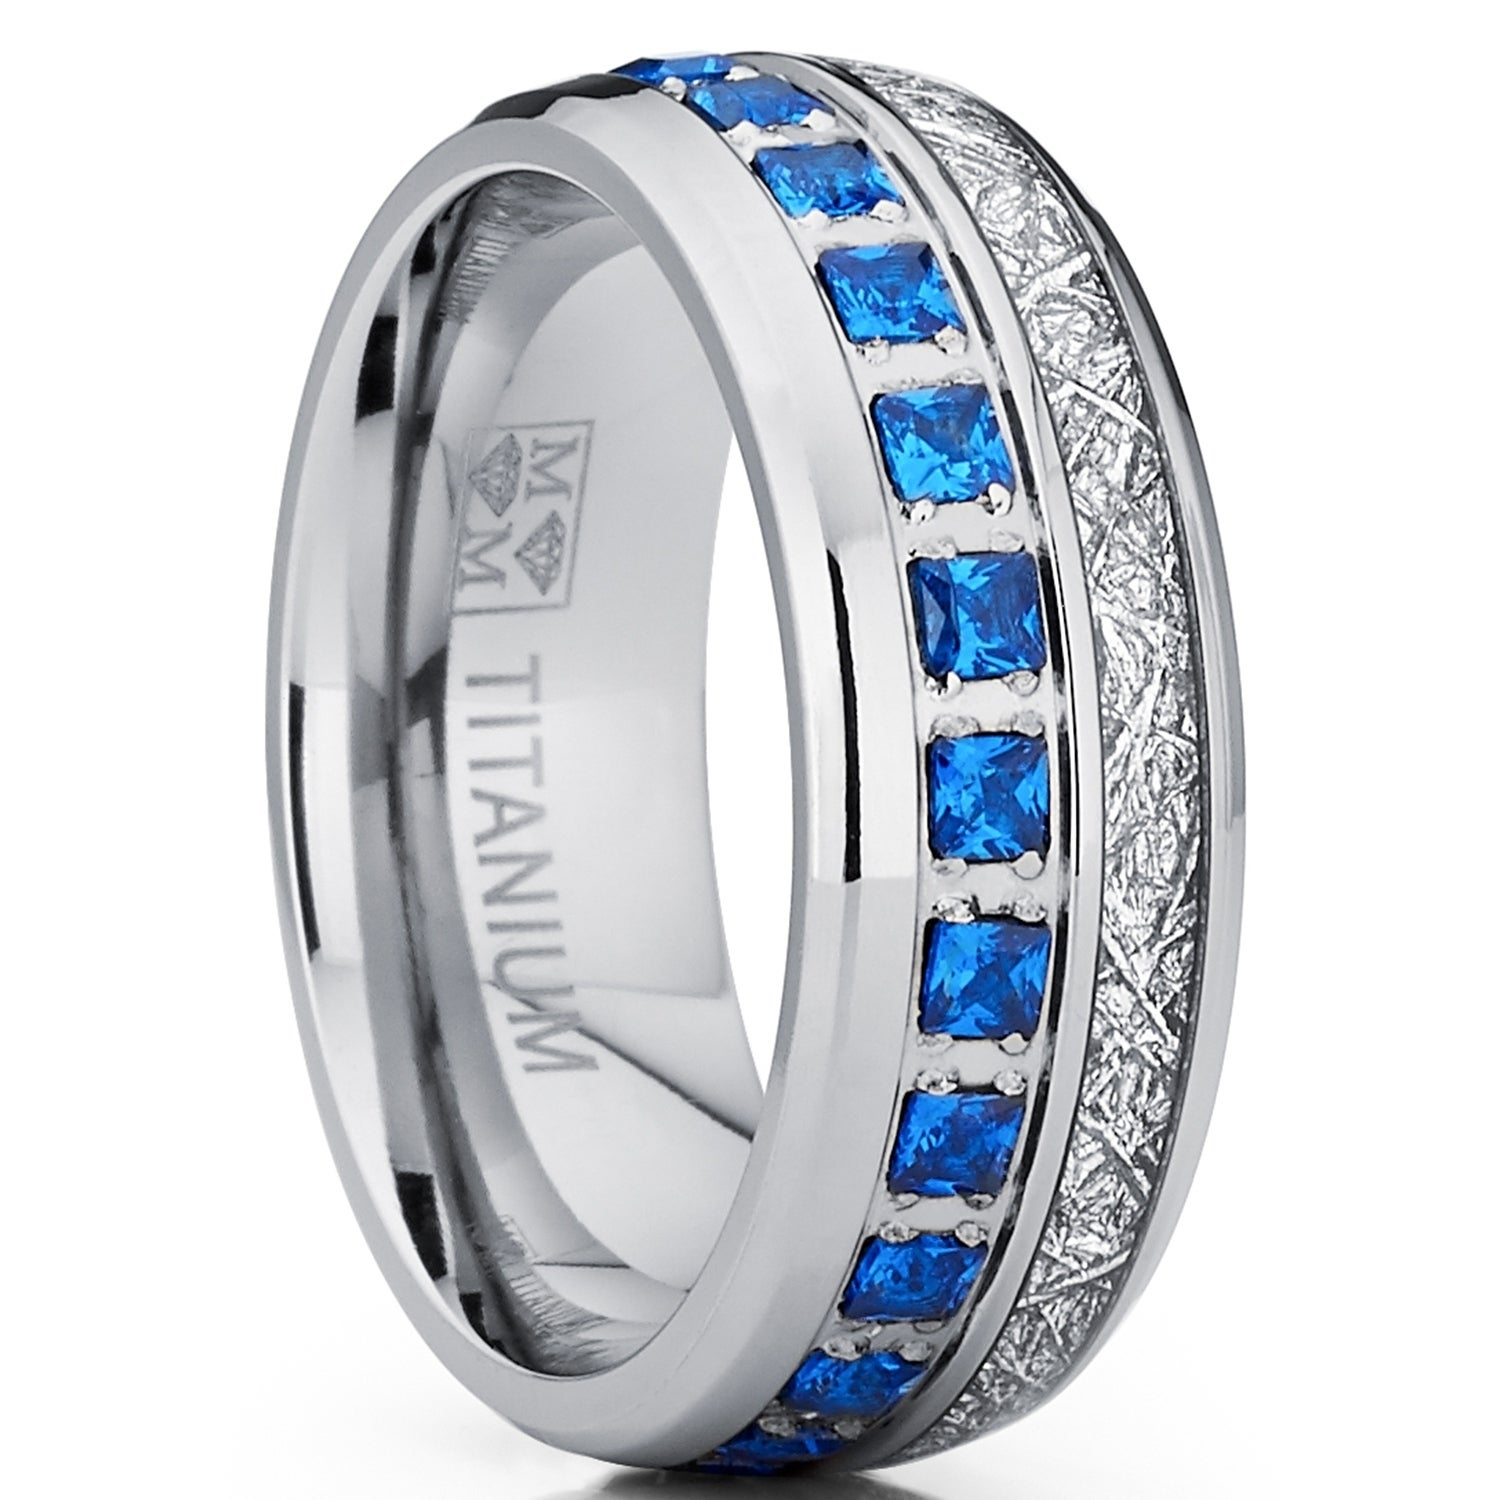 It is just a picture of Oliveti Titanium Wedding Band Imitation Meteorite Engagement Ring Blue Cubic Zirconia 44mm